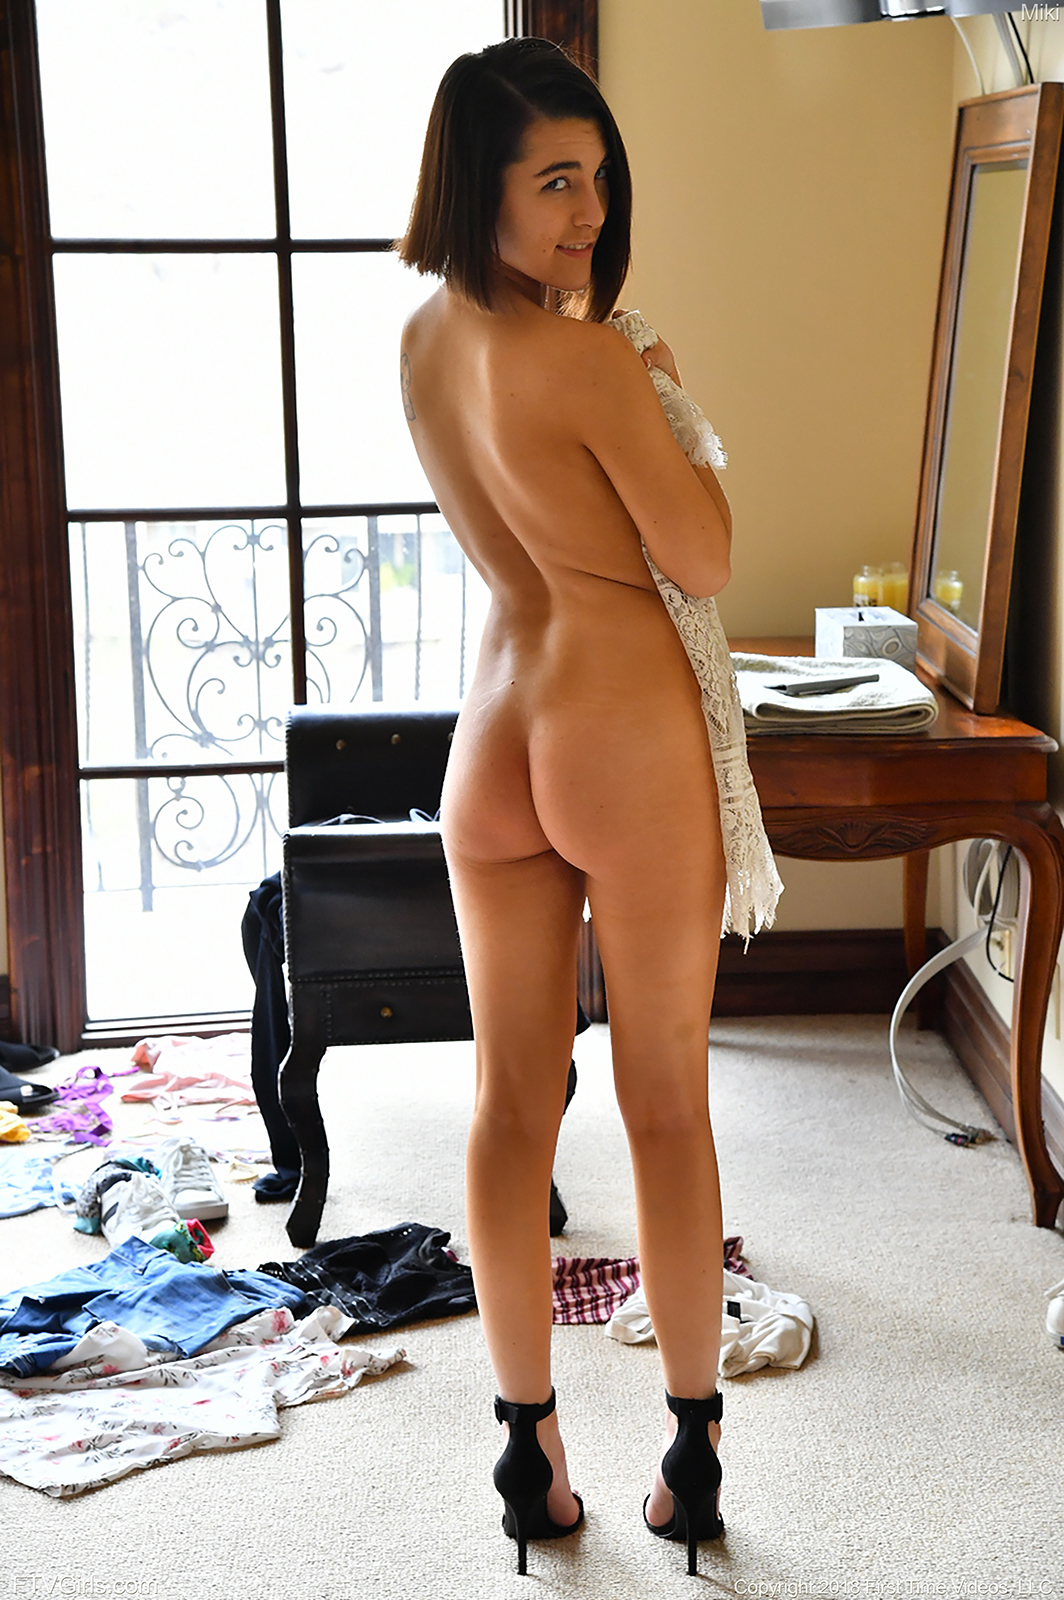 beautiful brunette needs big toys to get satisfied on her own #1